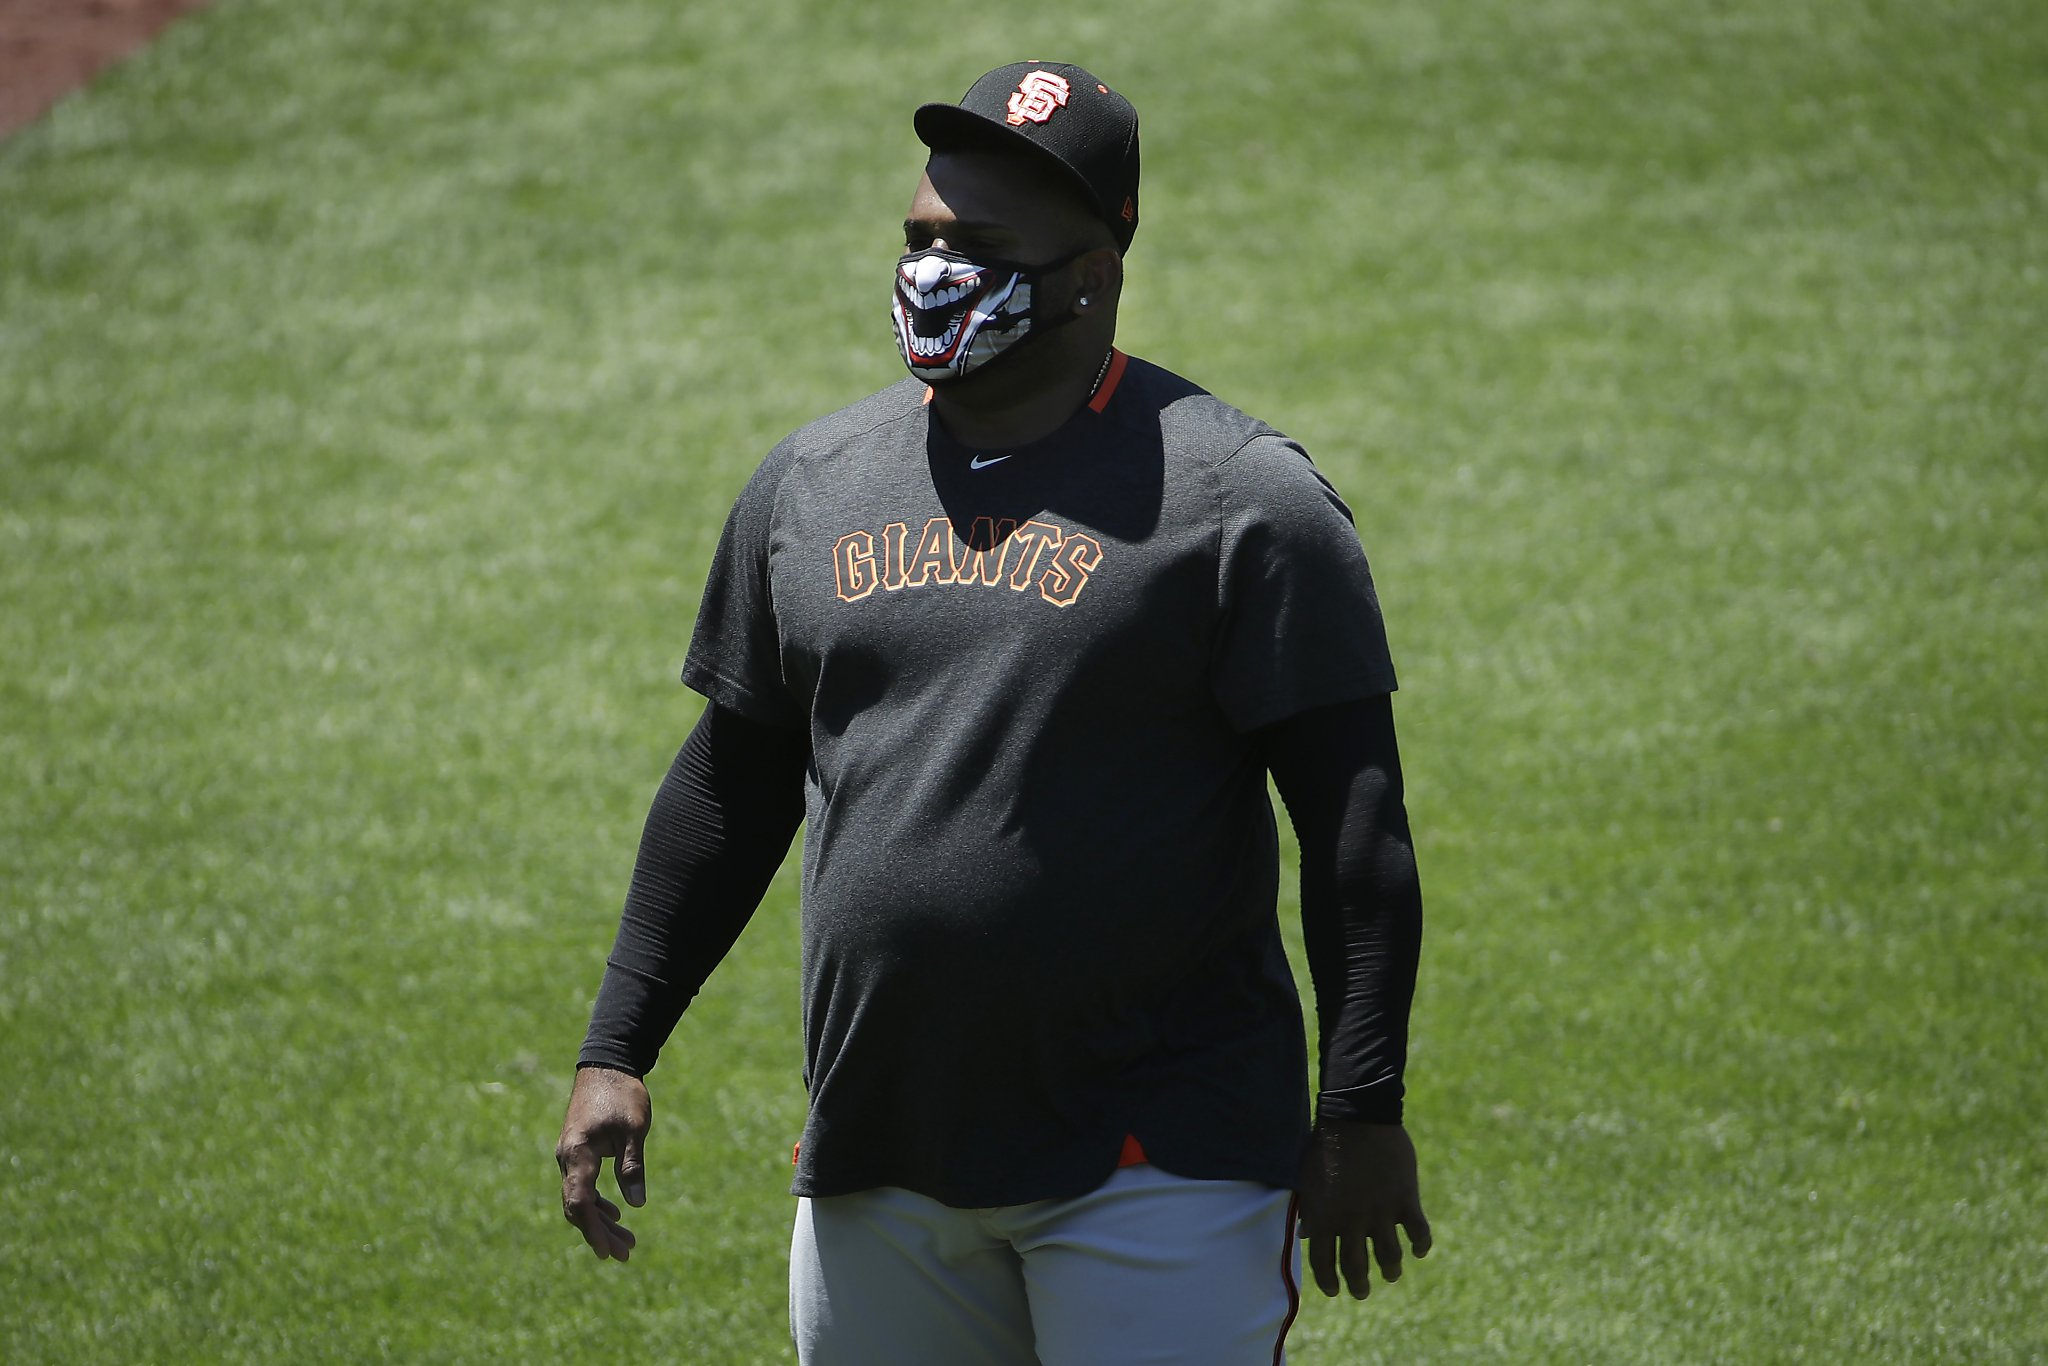 Giants' manager defers questions on Pablo Sandoval's weight, says his work looks good